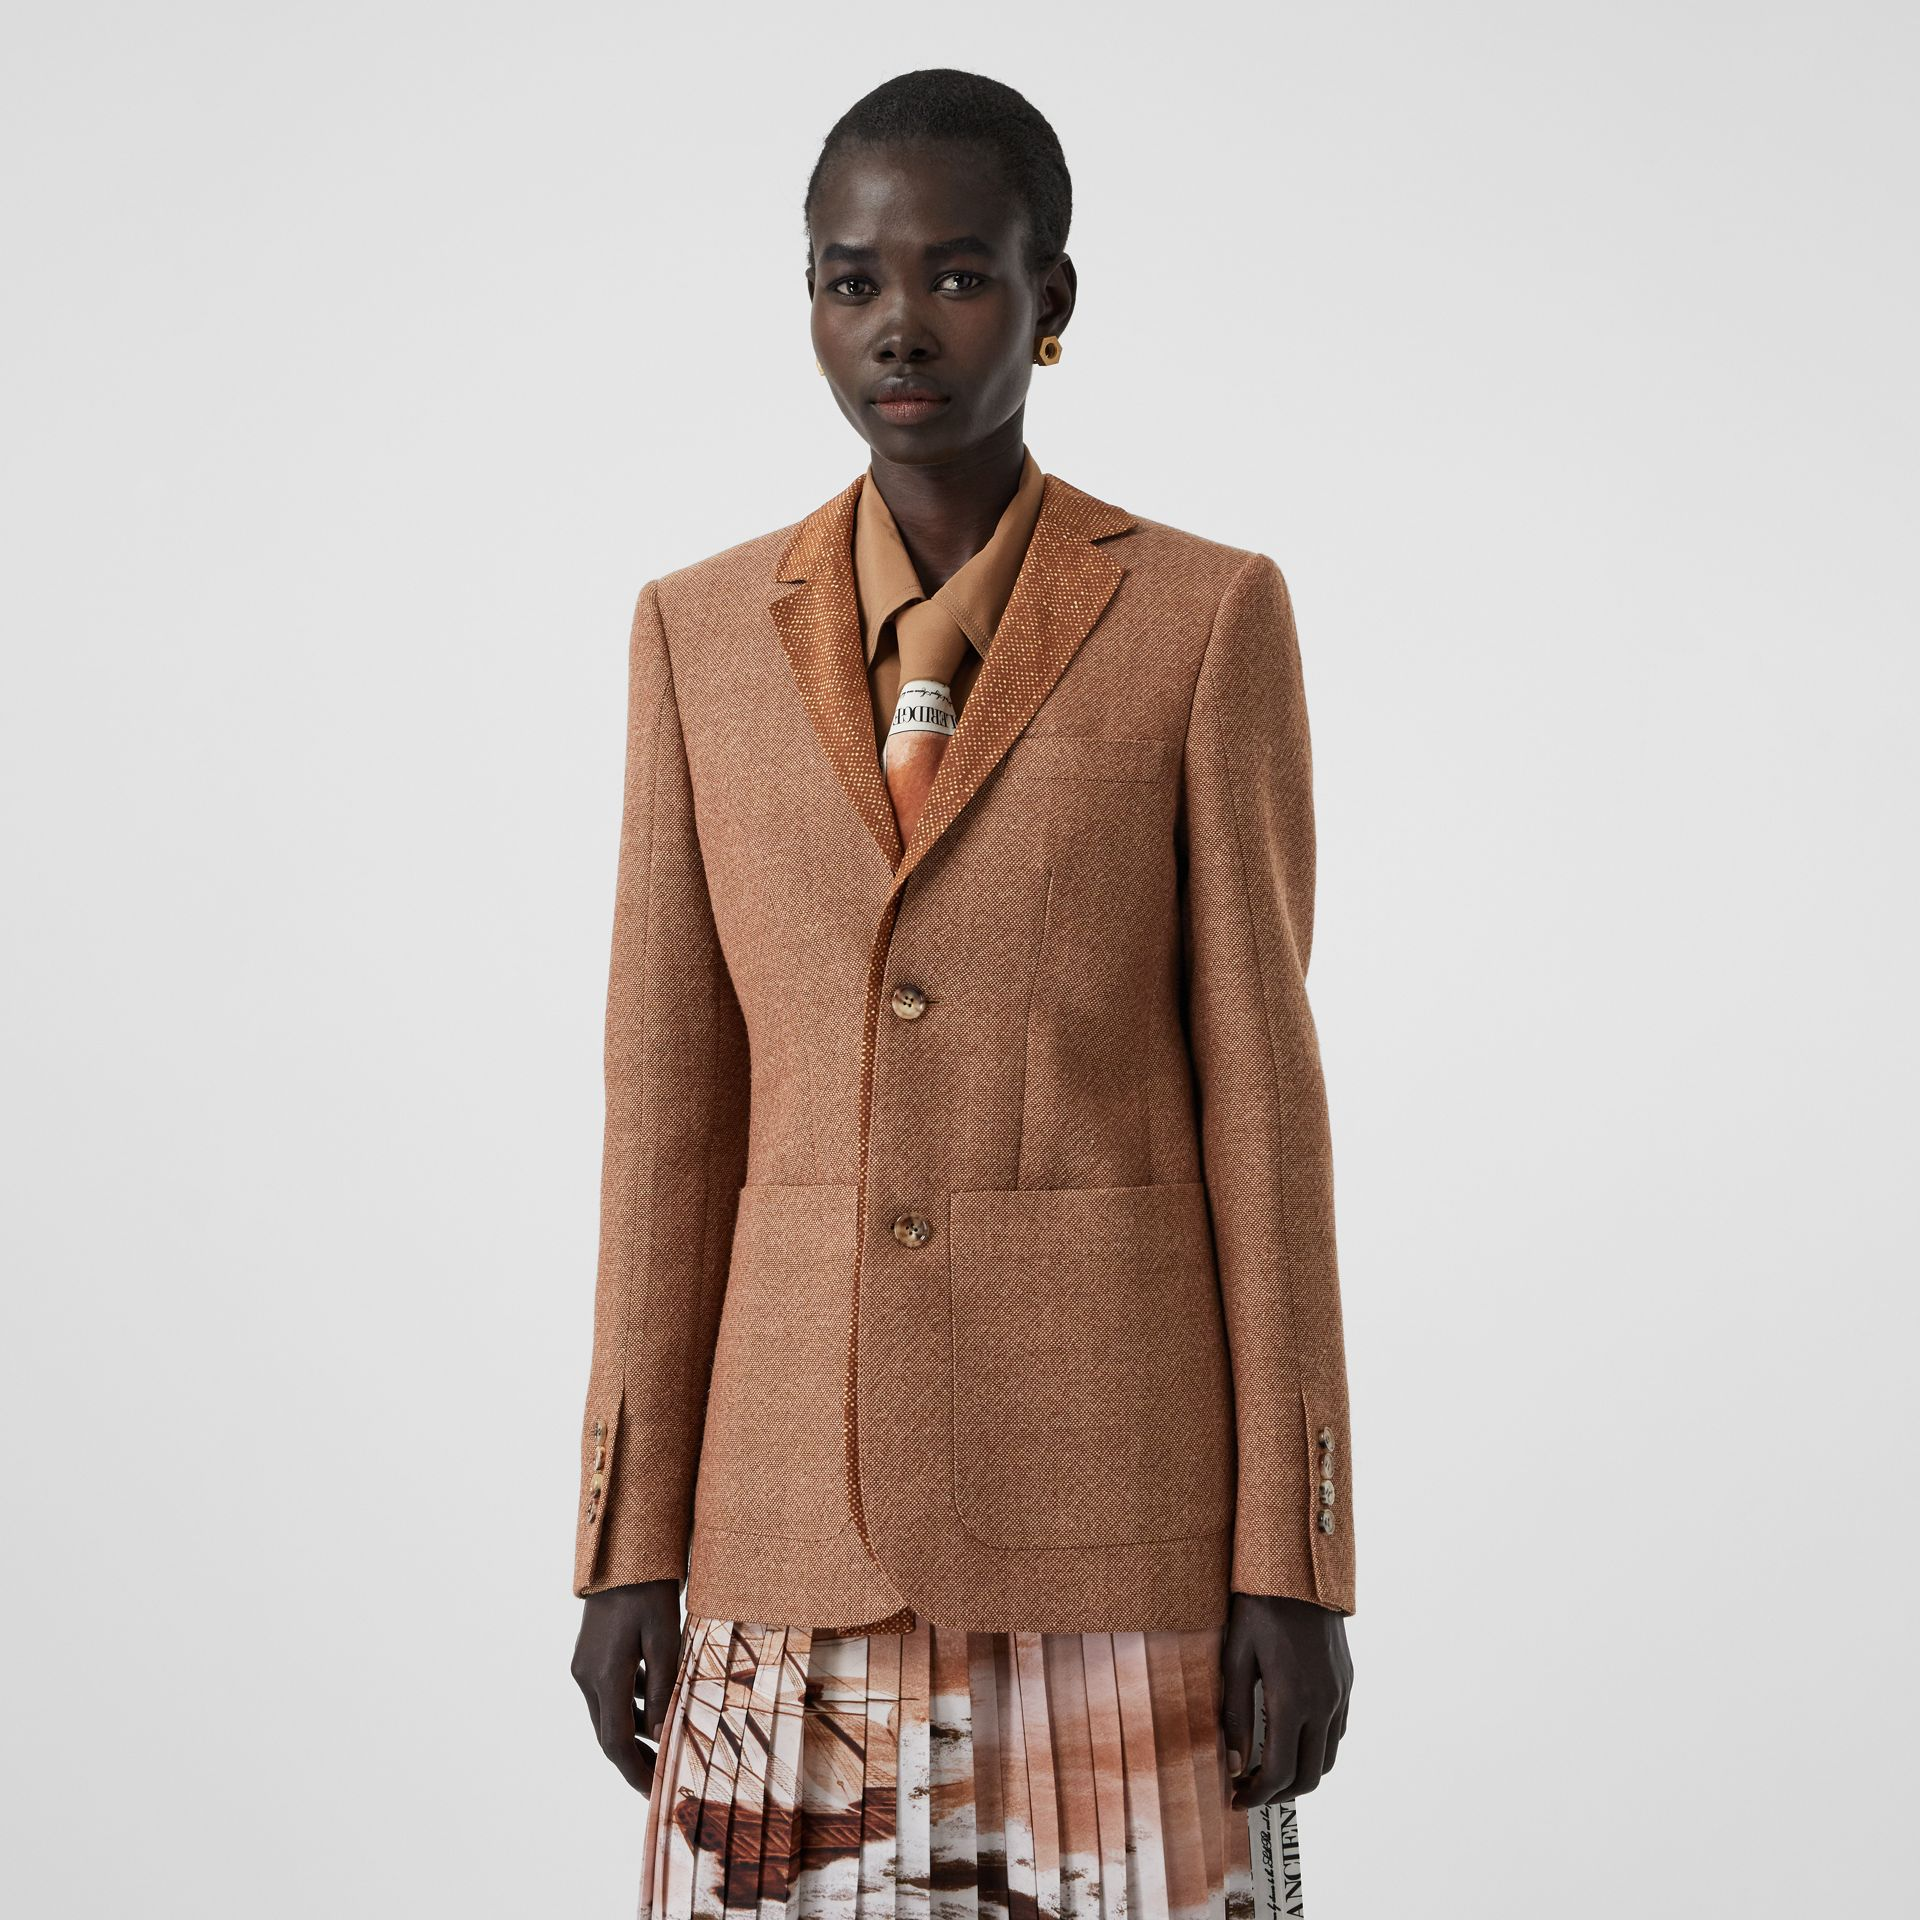 Fish-scale Print Bib Detail Wool Tailored Jacket in Bronze - Women | Burberry - gallery image 5